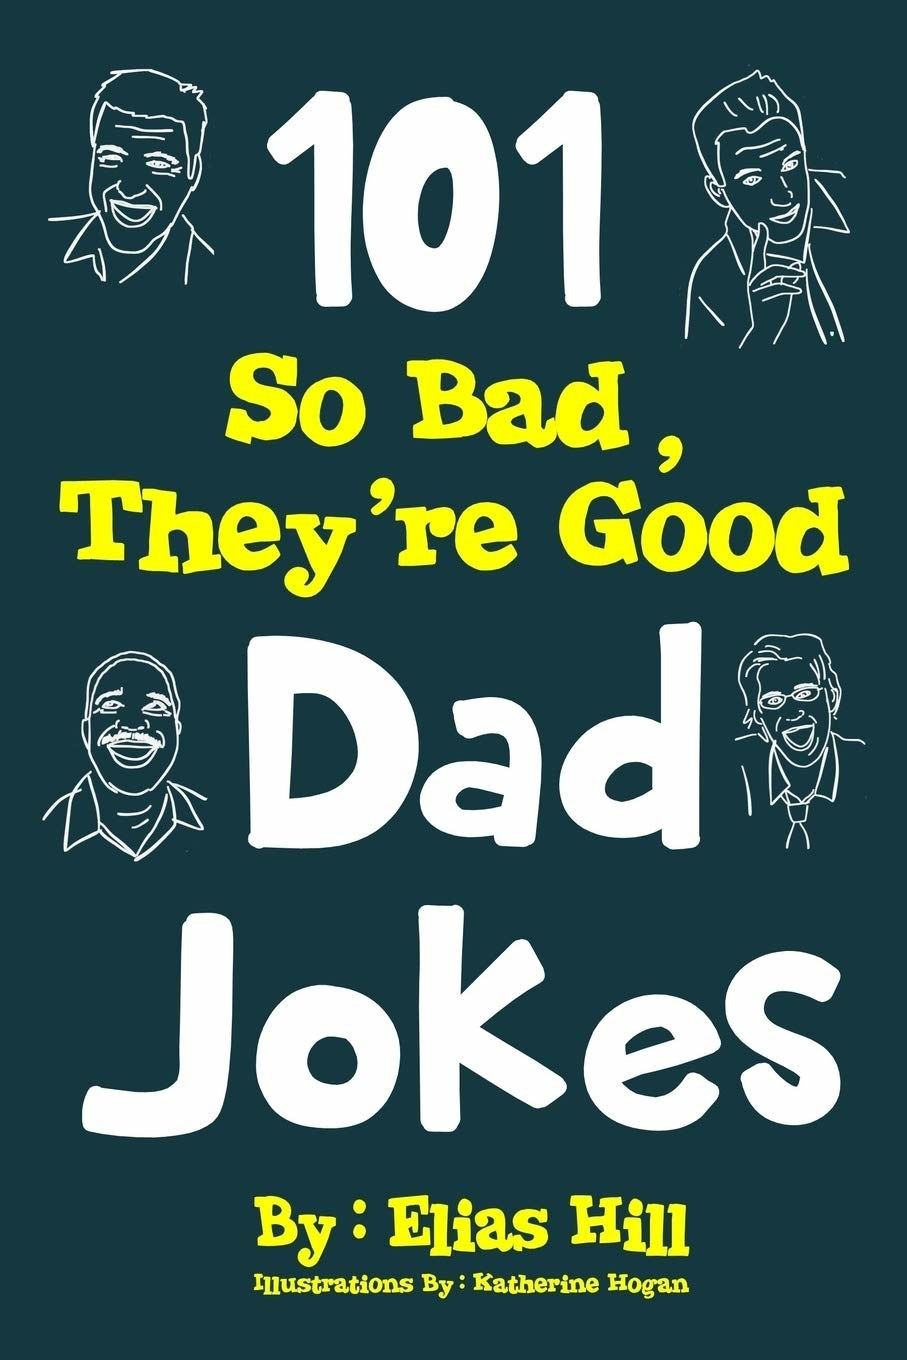 e3672084 A book of 101 dad jokes, which might be the most unselfish gift you could  possibly give him. On the one hand, it pains you to provide him with more  terribly ...